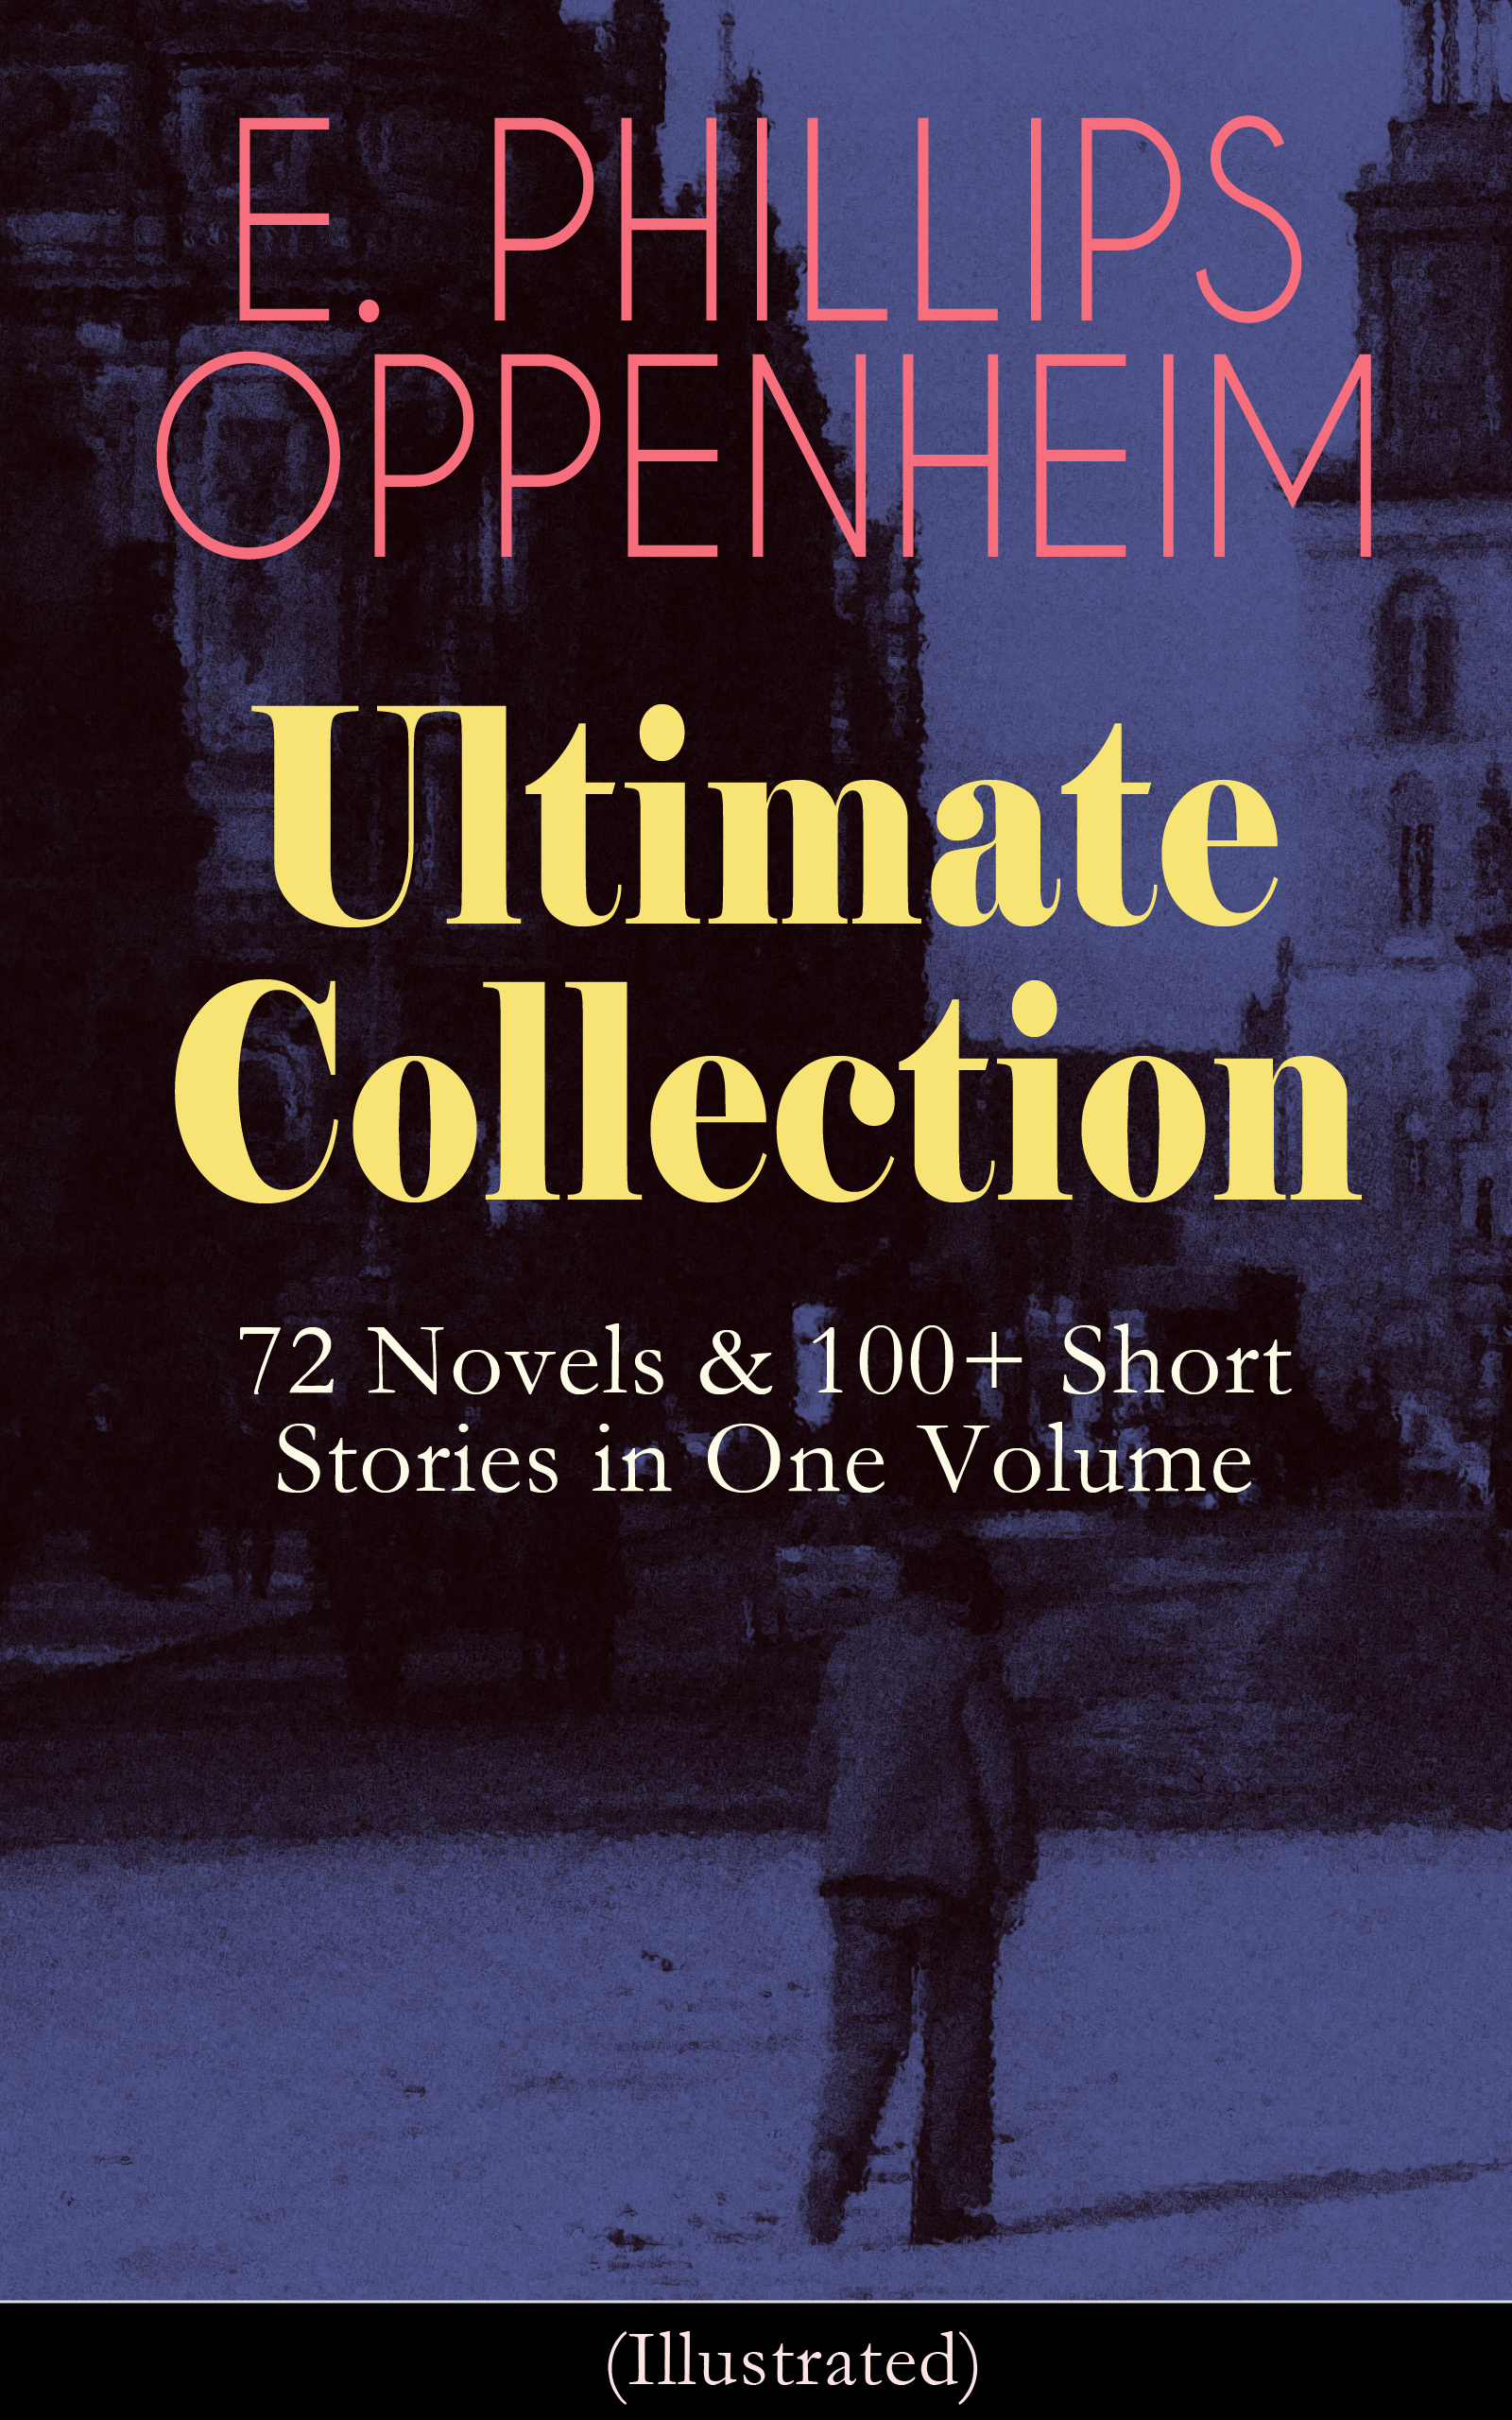 E. Phillips Oppenheim E. PHILLIPS OPPENHEIM Ultimate Collection: 72 Novels & 100+ Short Stories in One Volume недорого